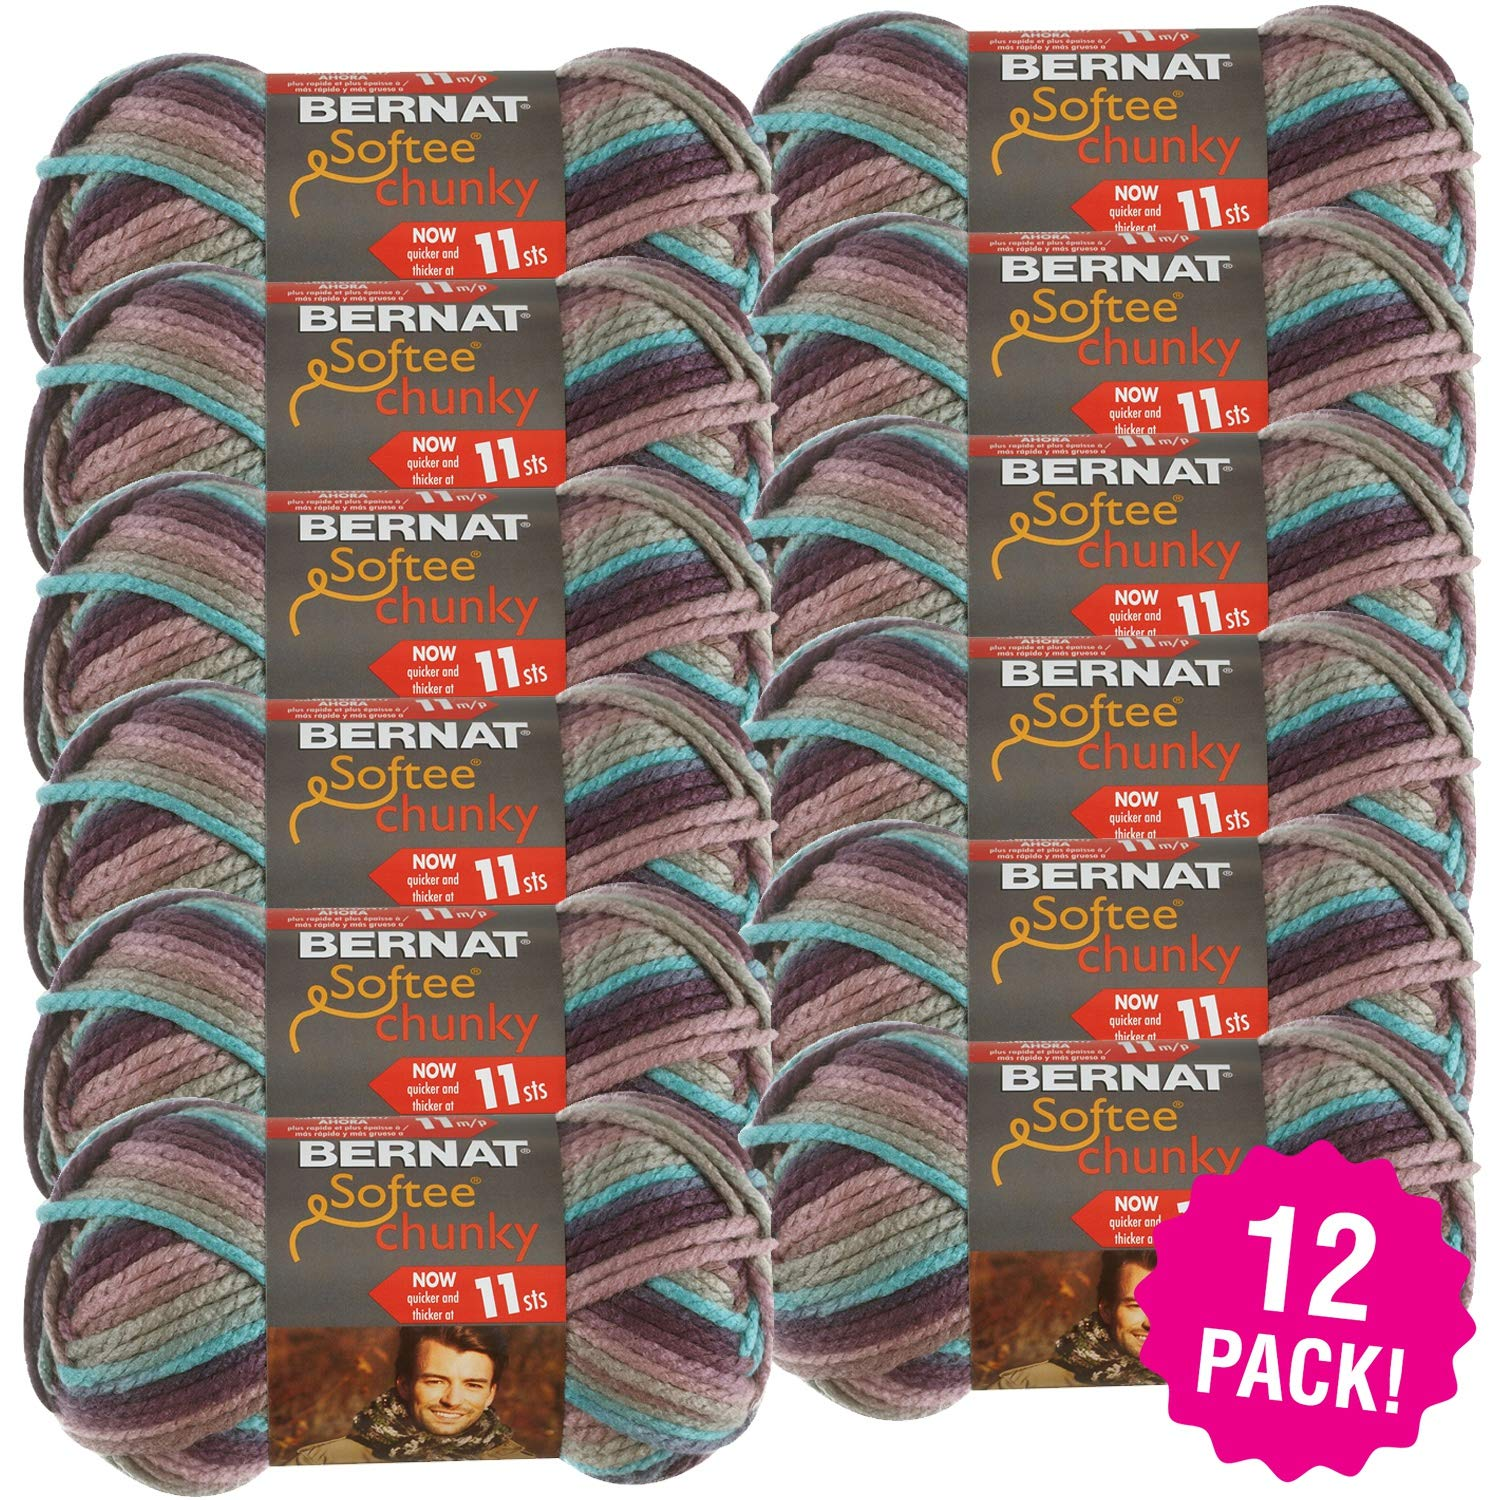 Bernat 97143 Softee Chunky Ombre Yarn-Shadow, Multipack of 12, Pack